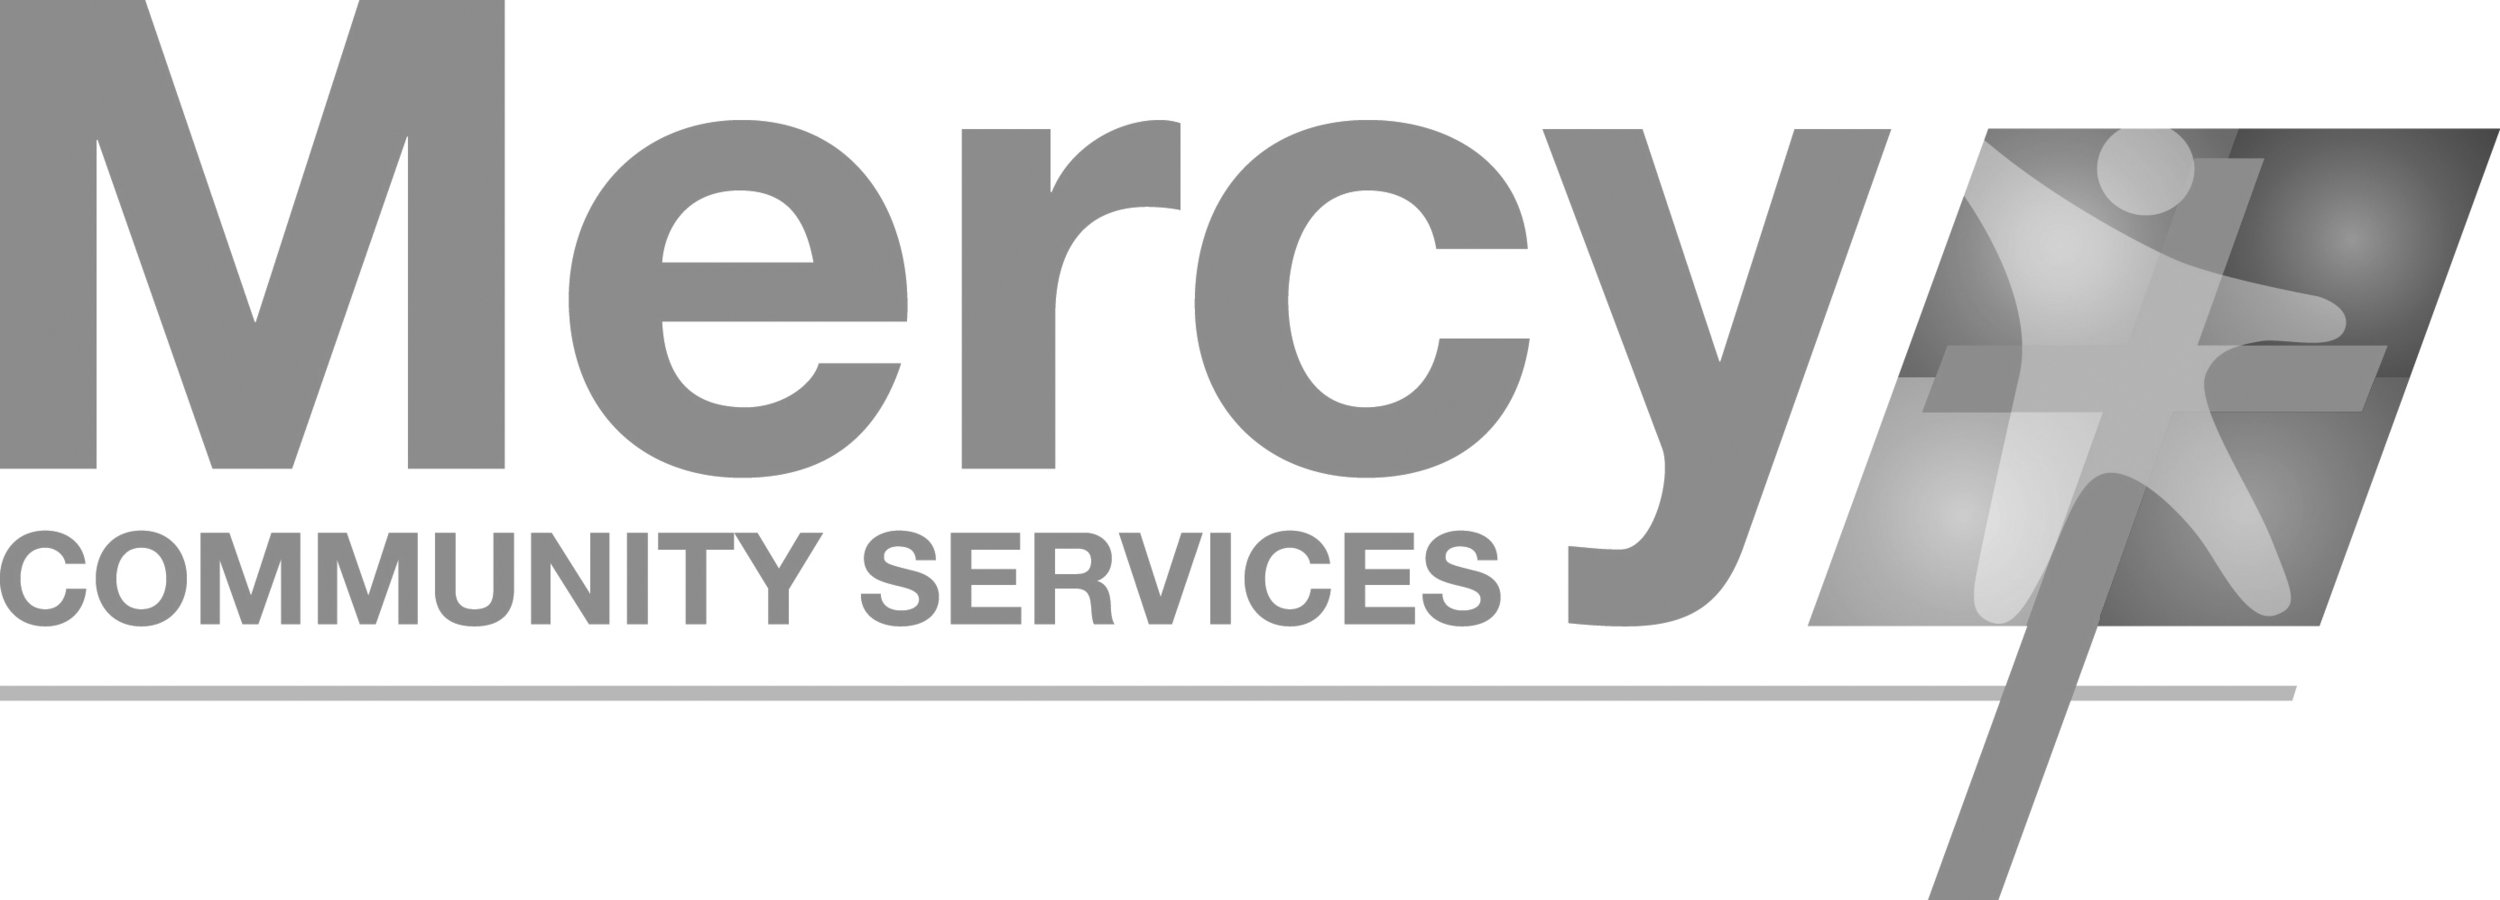 Mercy Community Services colour logo.jpg